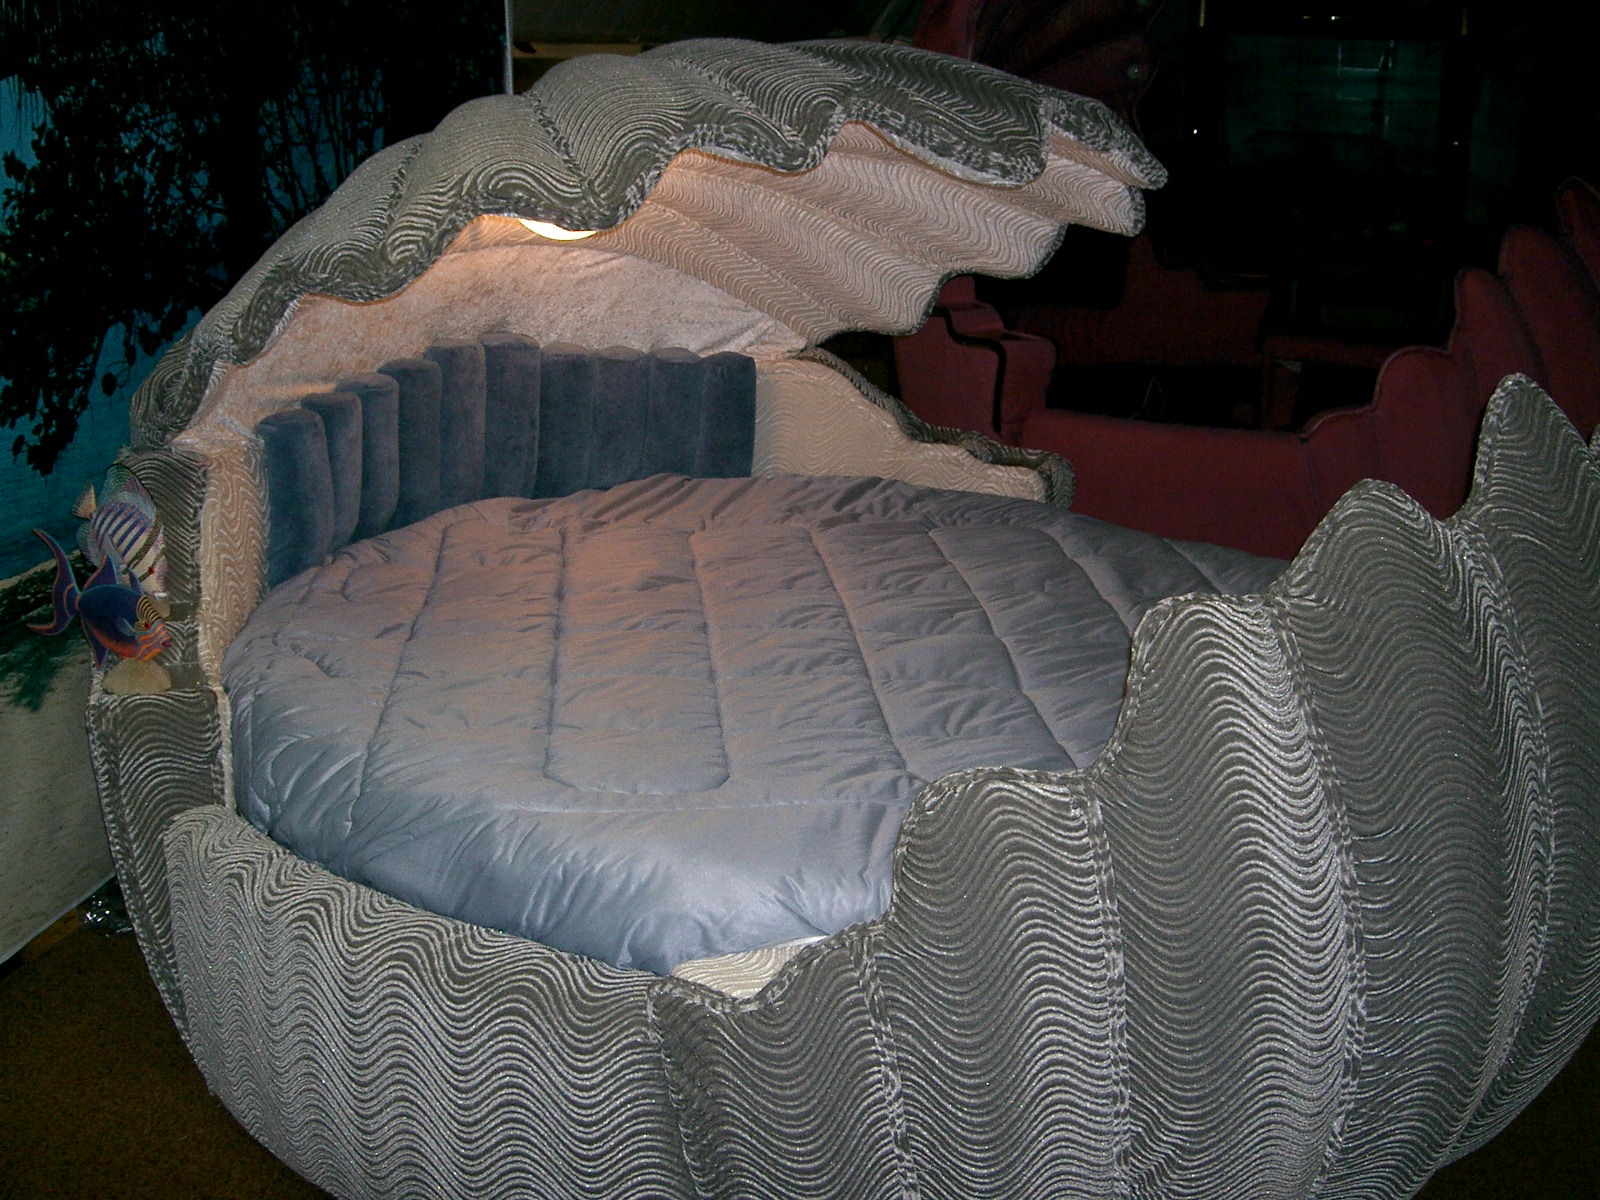 Round Beds | Round Bed Comforters | Round Sectional Sofa Bed